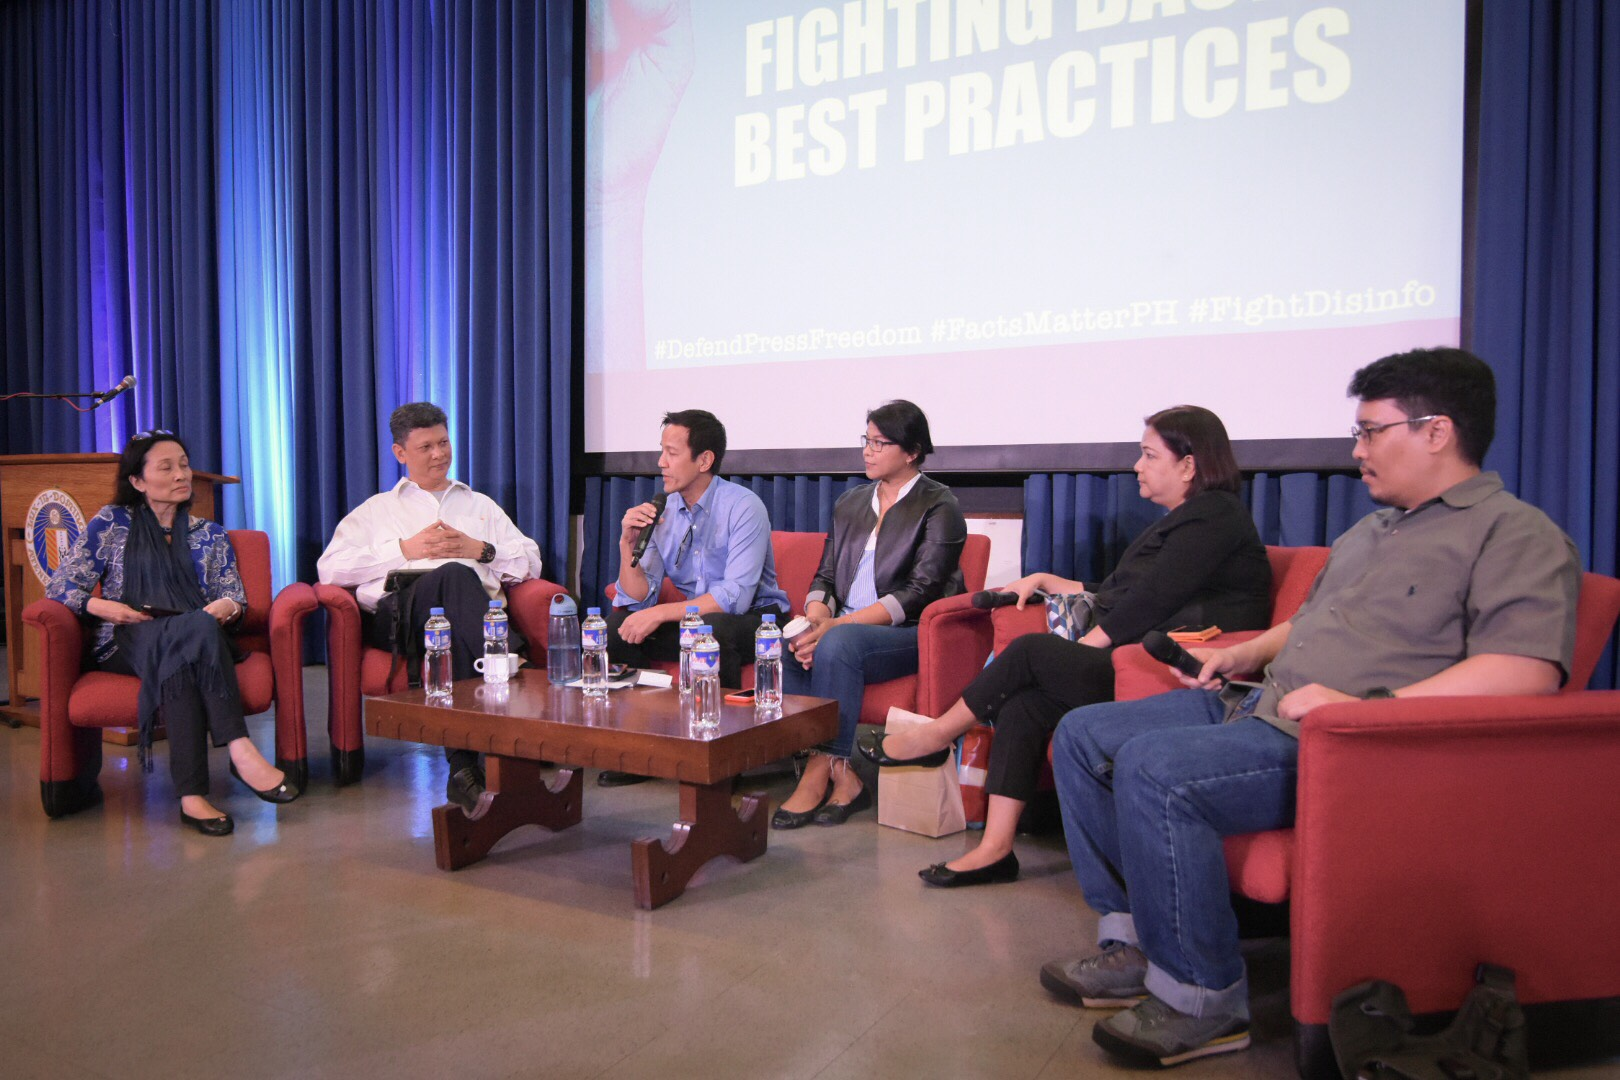 """Fighting Back: Best Practices."" Jane Uymatiao, Ed Lingao, Gang Badoy, Beng Cabangon, and Naz Nazareno with Vince Lazatin during the Democracy and Disinformation forum on February 13, 2018. Photo by LeAnne Jazul/Rappler"